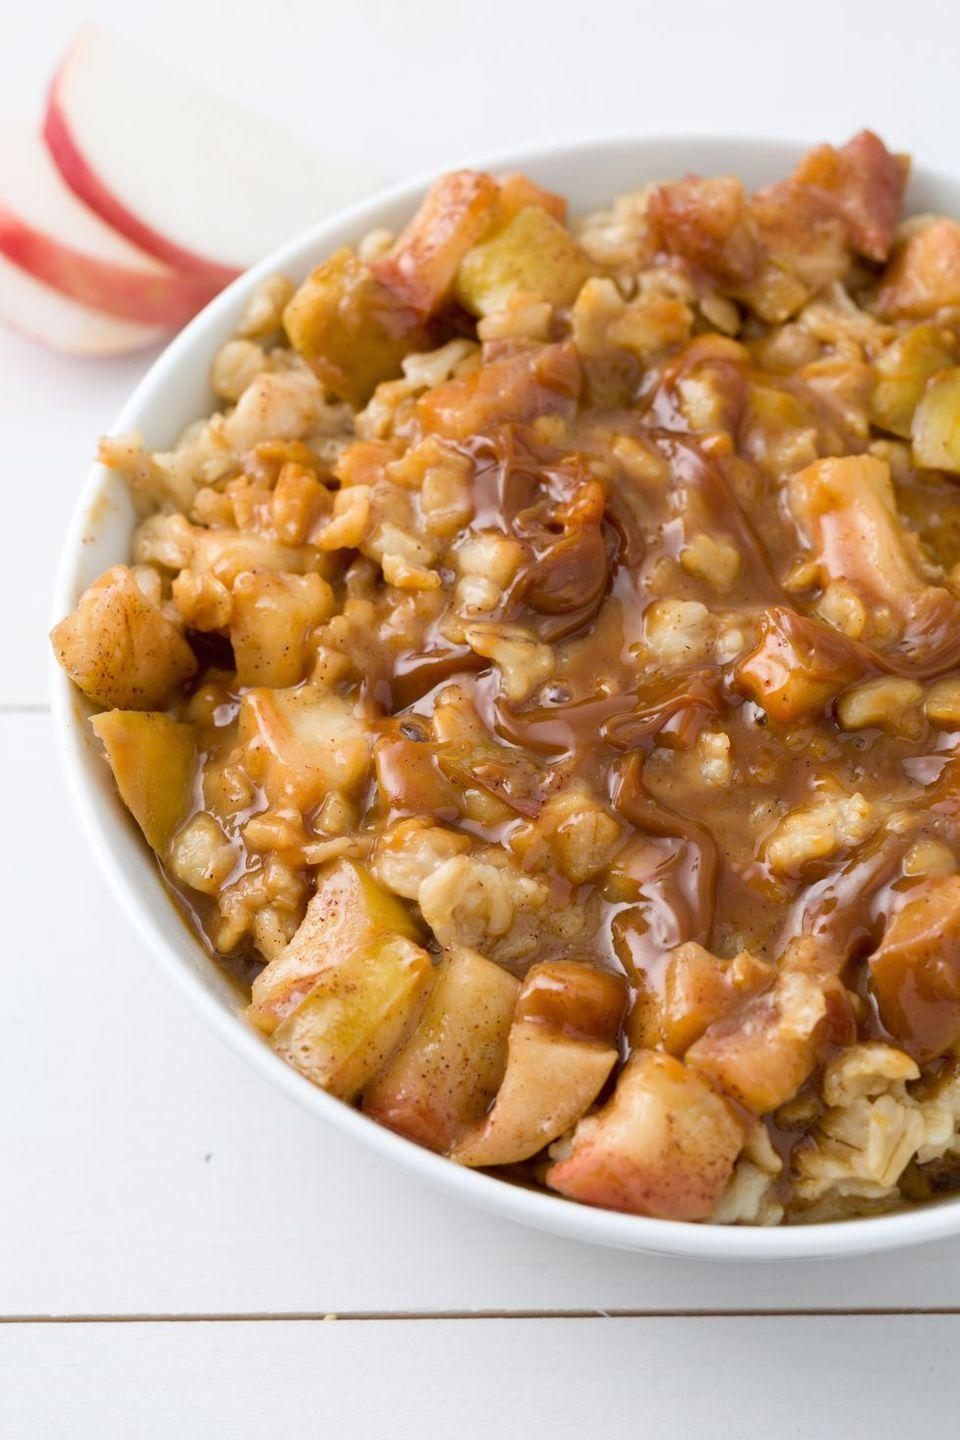 """<p>Yes, we love apple pie so much we turned it into porridge. Drizzled with caramel, it's a breakfast you won't forget.</p><p>Get the <a href=""""https://www.delish.com/uk/cooking/recipes/a29016955/caramel-apple-pie-oatmeal-recipe/"""" rel=""""nofollow noopener"""" target=""""_blank"""" data-ylk=""""slk:Caramel Apple Pie Porridge"""" class=""""link rapid-noclick-resp"""">Caramel Apple Pie Porridge</a> recipe.</p>"""